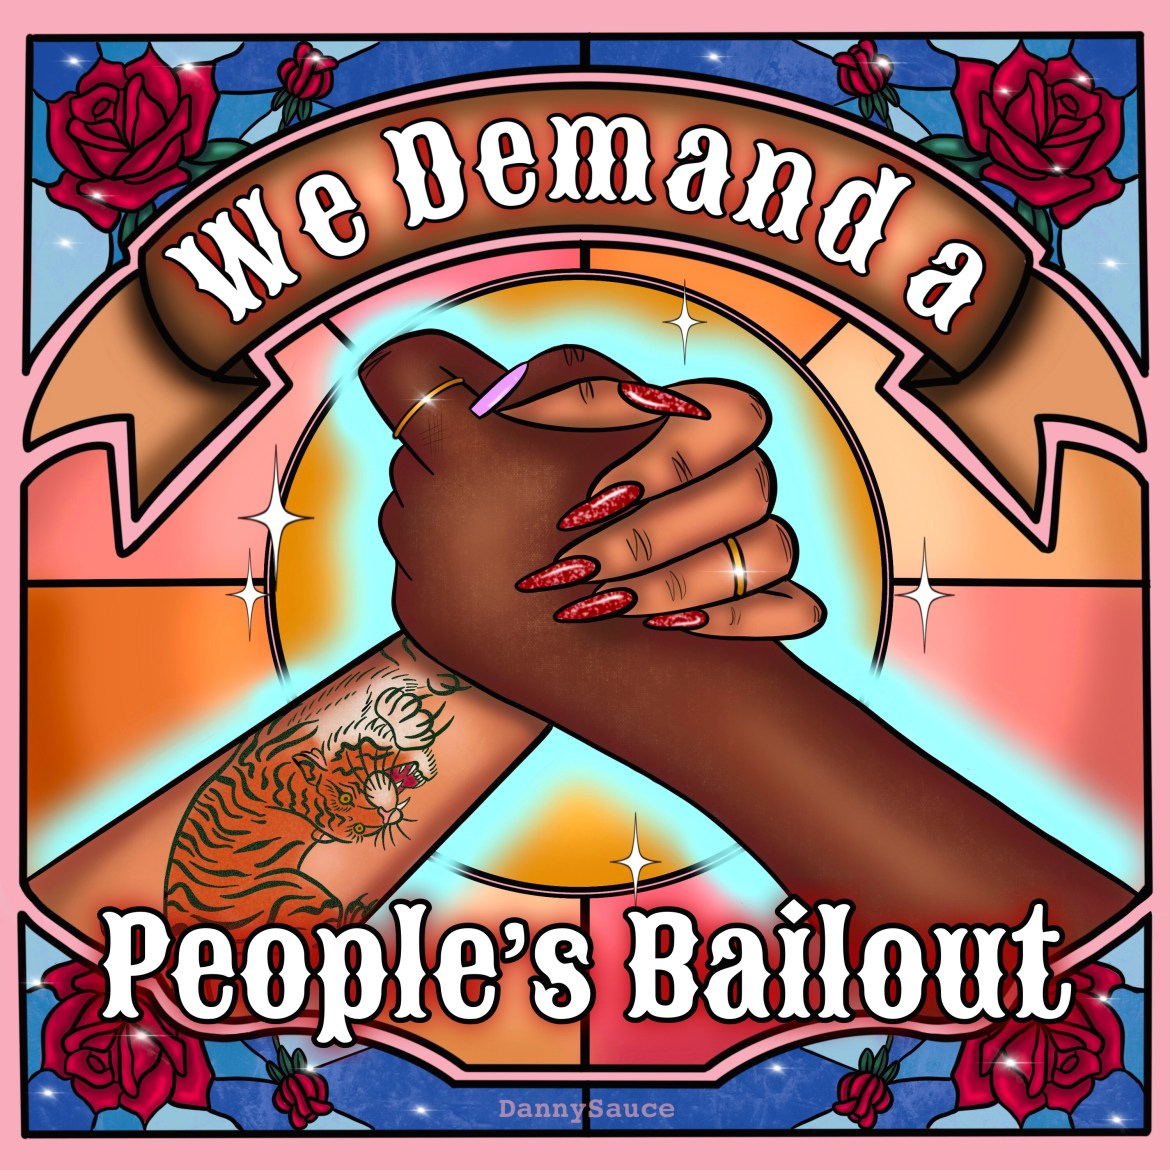 People's bailout international women's day